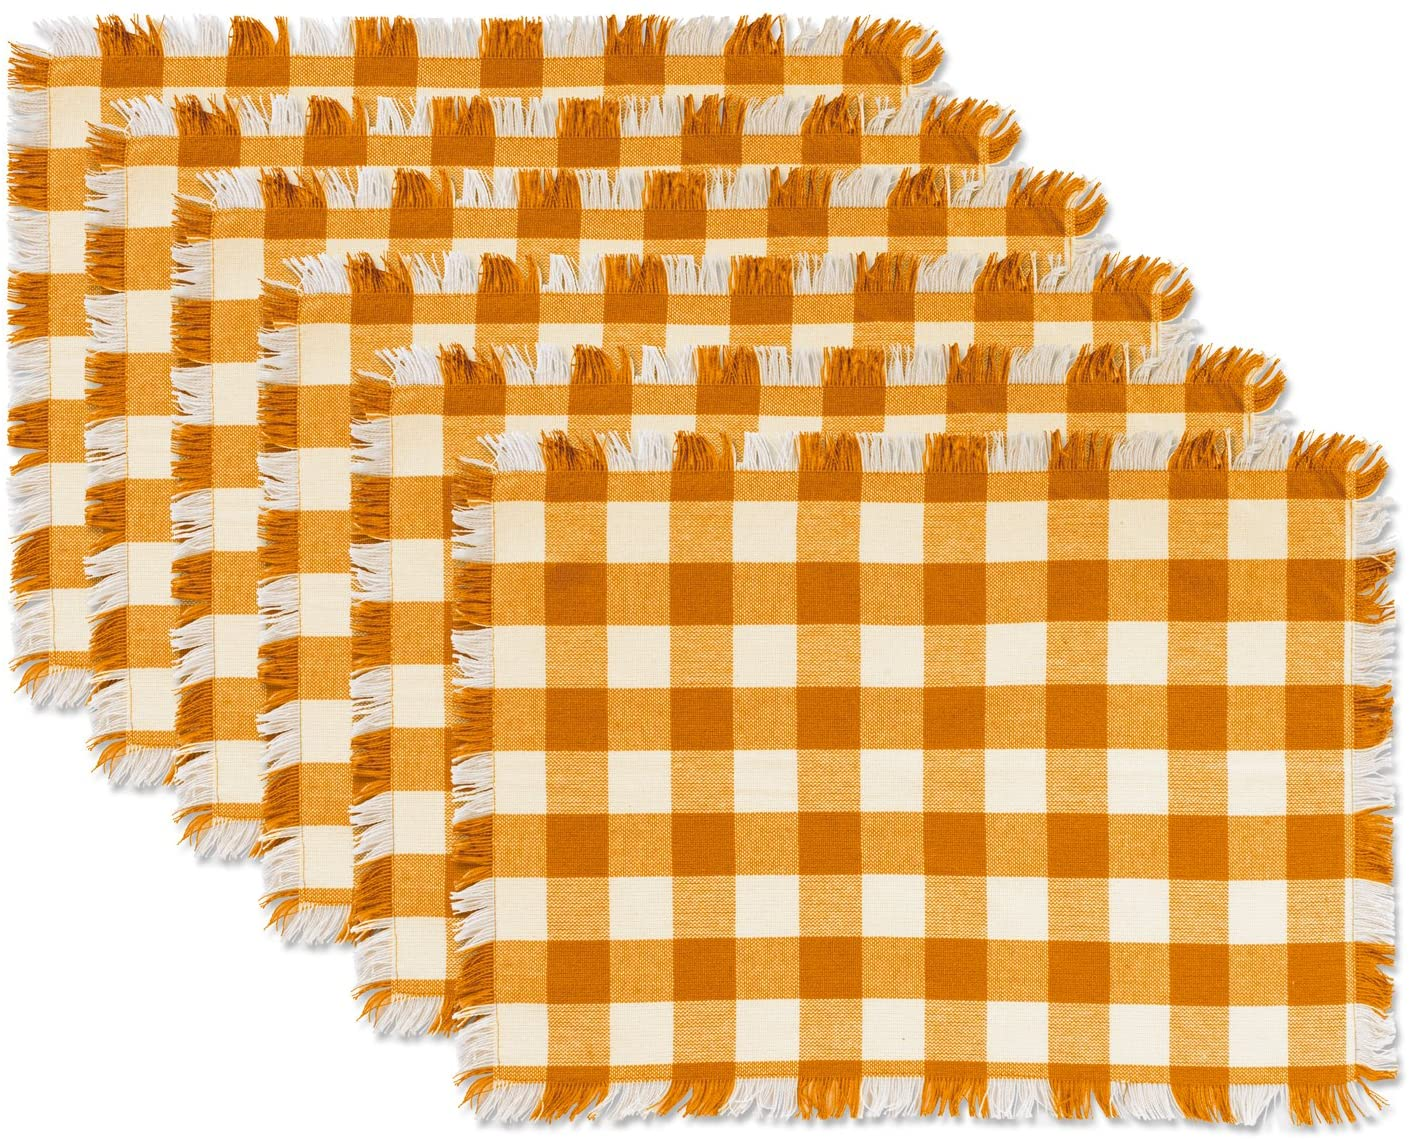 DII CAMZ37572 Heavyweight Fringed MT Check S/6, Placemat, Checkered Pumpkin Spice 6 Count